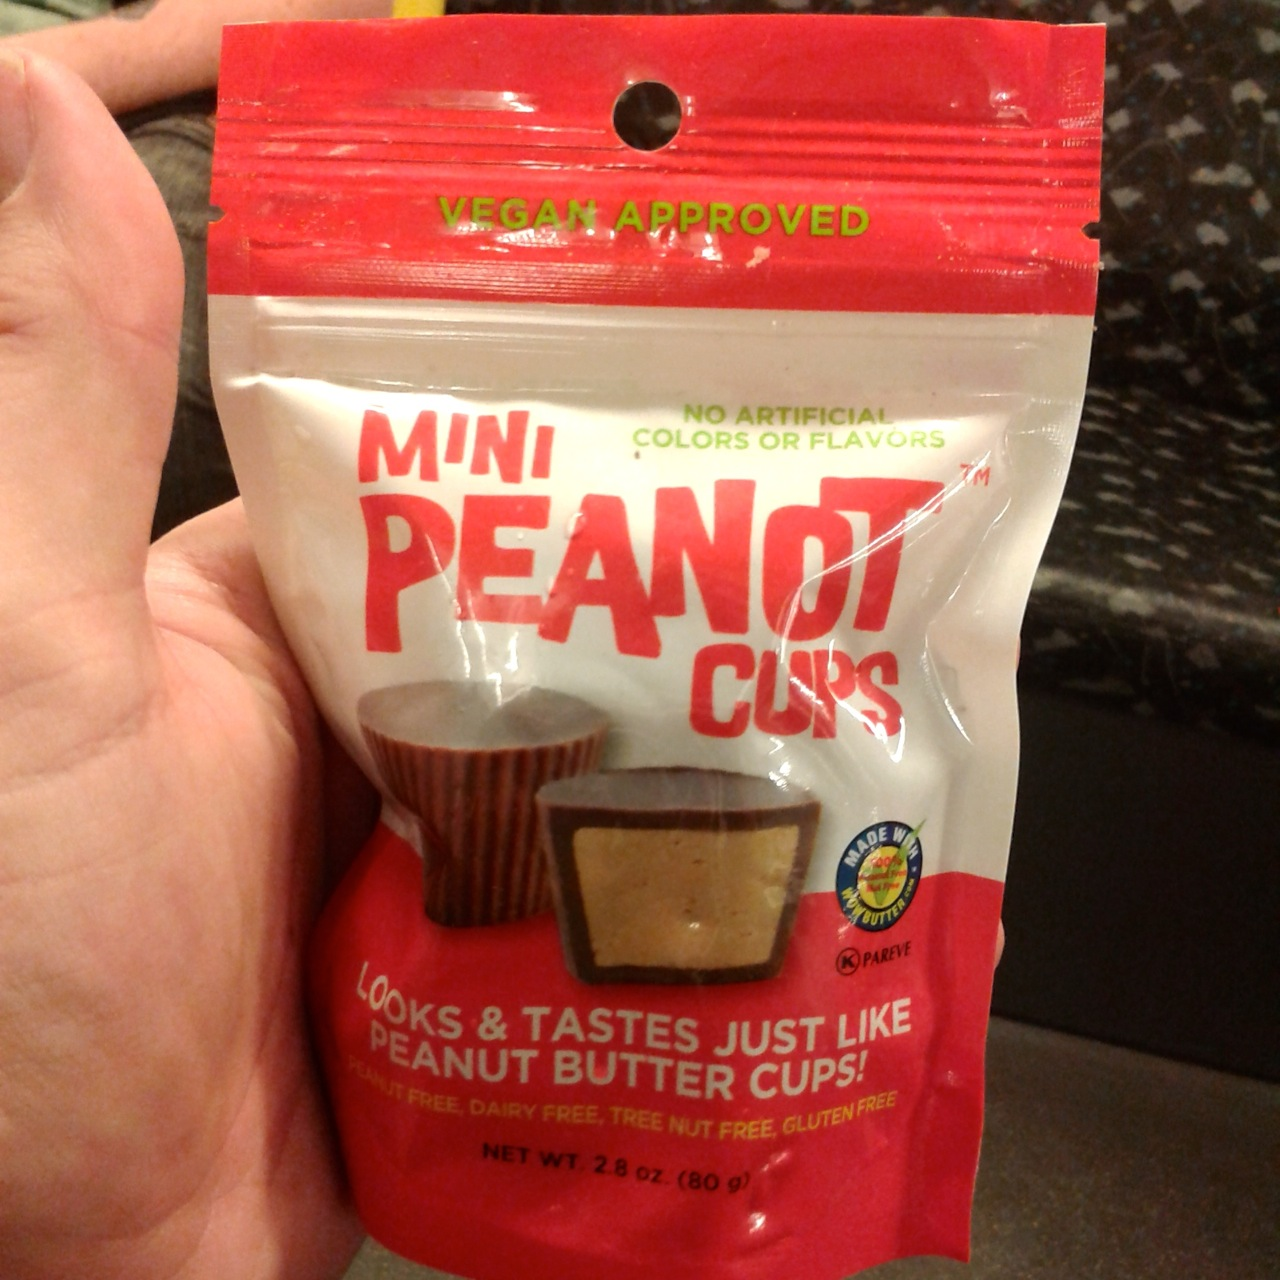 https://i2.wp.com/fatgayvegan.com/wp-content/uploads/2014/10/peanut-cups.jpg?fit=1280%2C1280